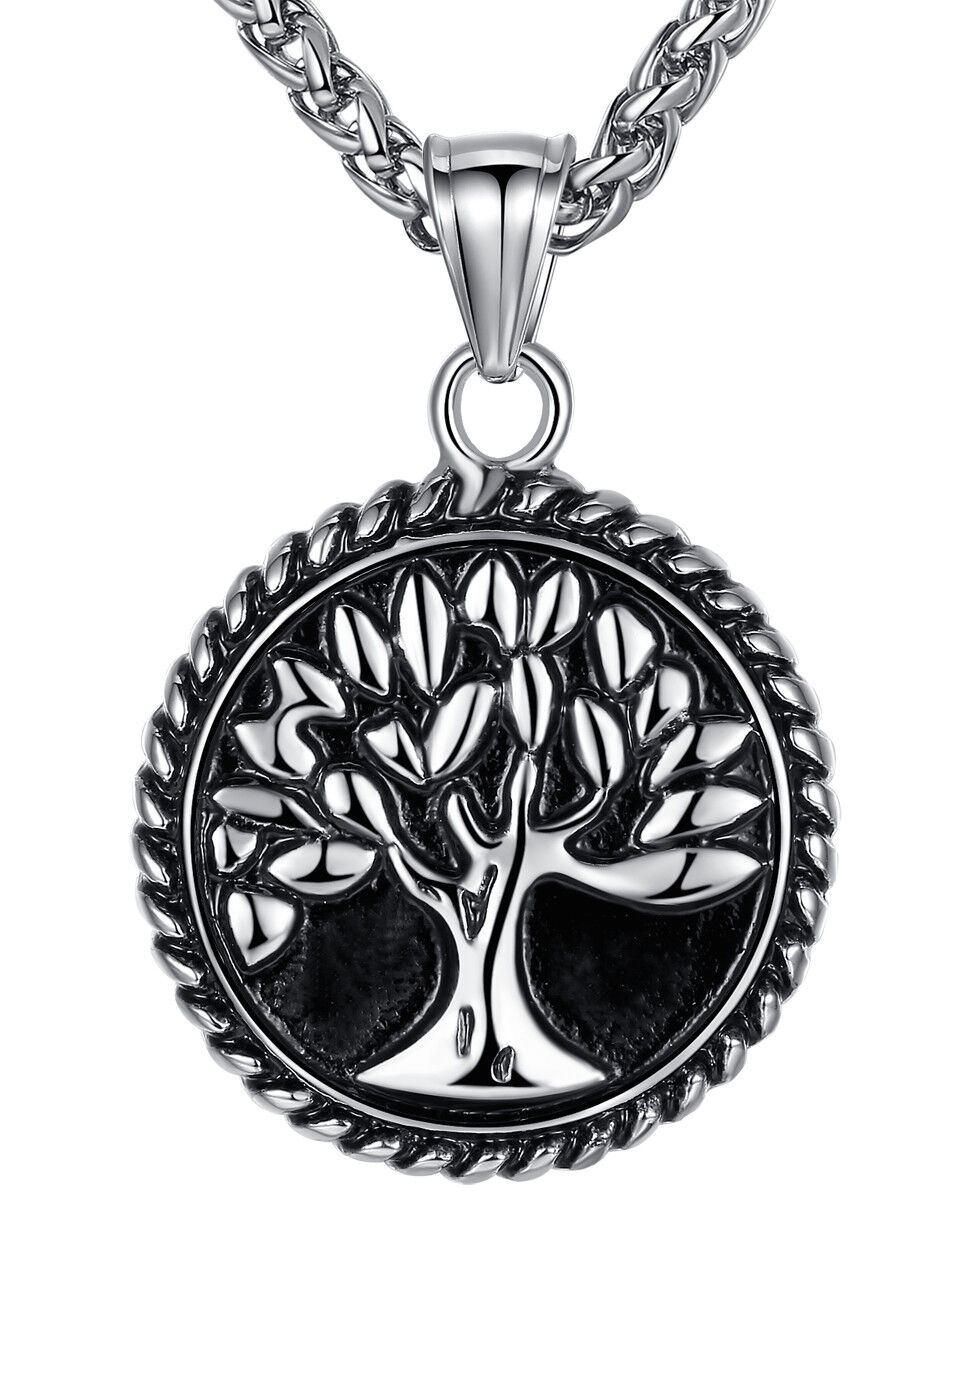 Stainless Steel Tree of Life Men's Women's Pendant Necklace Chains, Necklaces & Pendants